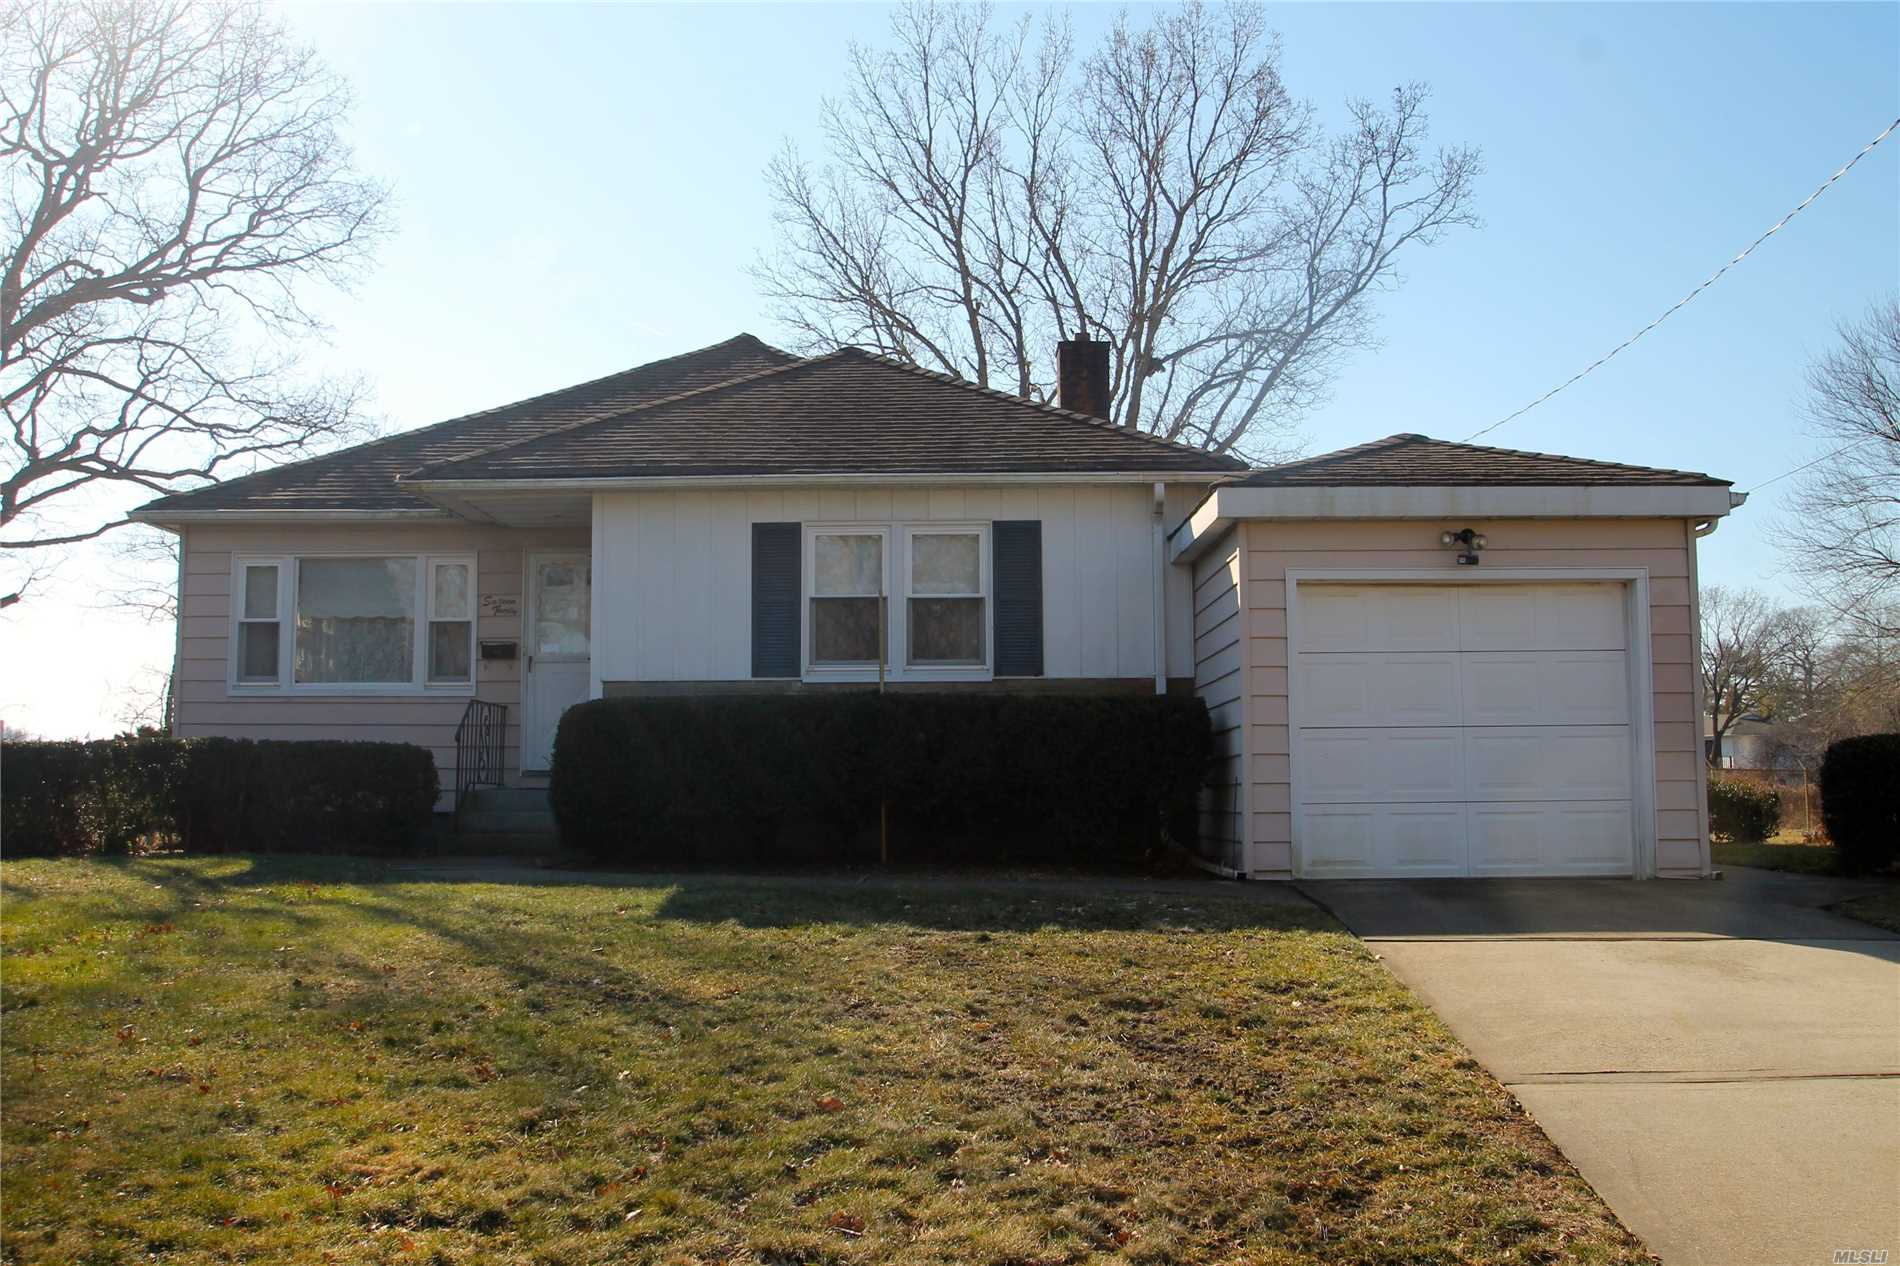 Just Right If Home Ownership Is Your Plan, Then Come See This 3 Bed, 1 Bath Ranch. Featuring A Large Living Room With Built-In Bookcase, Hardwood Floors, Eik With Breakfast Area, Partially-Finished Basement W/Ose. 1 Car Att. Garage. Great Starter Home.